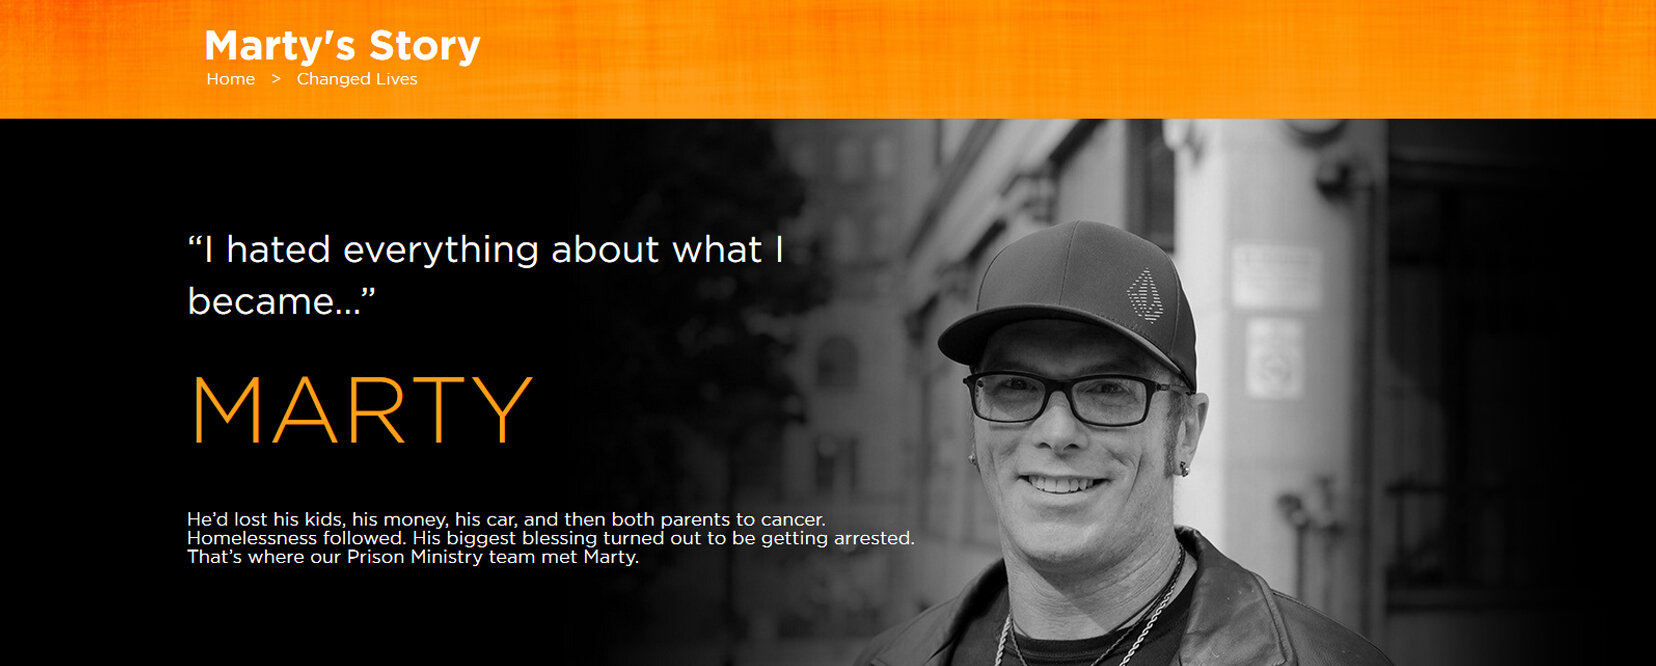 Click on the image to hear Marty's story.